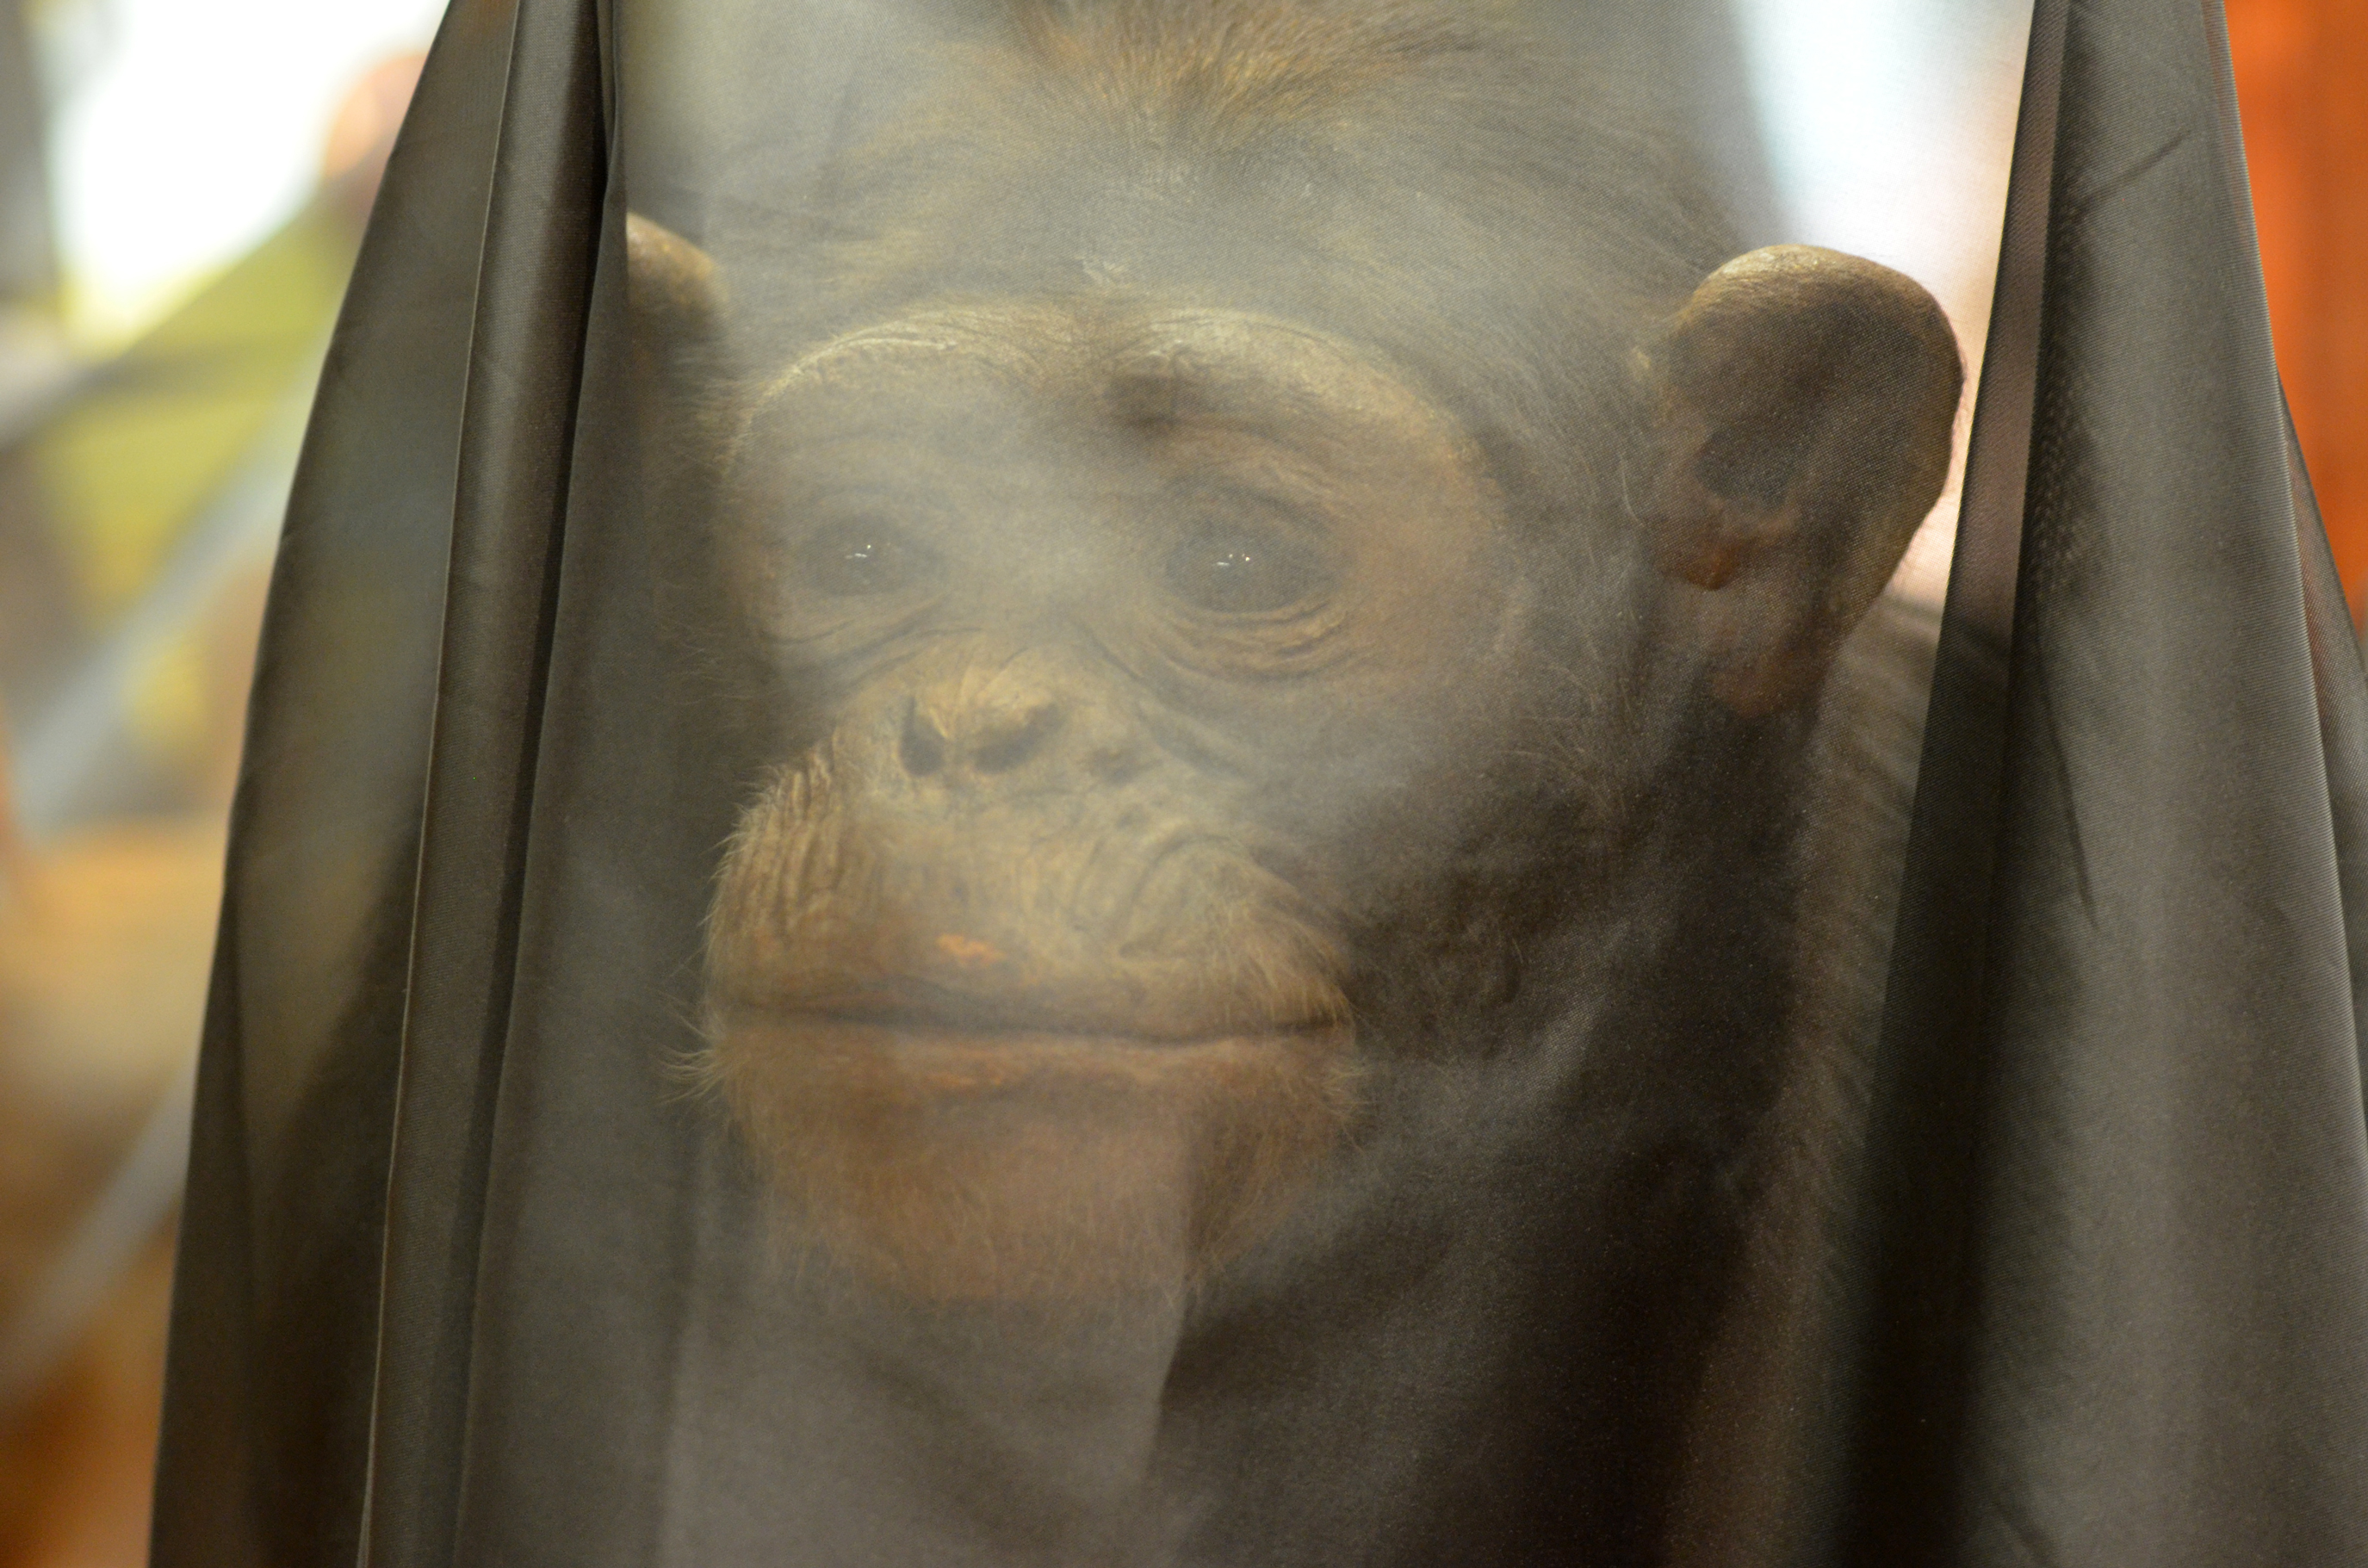 Animal exhibits draped in veils to mourn extinction crisis